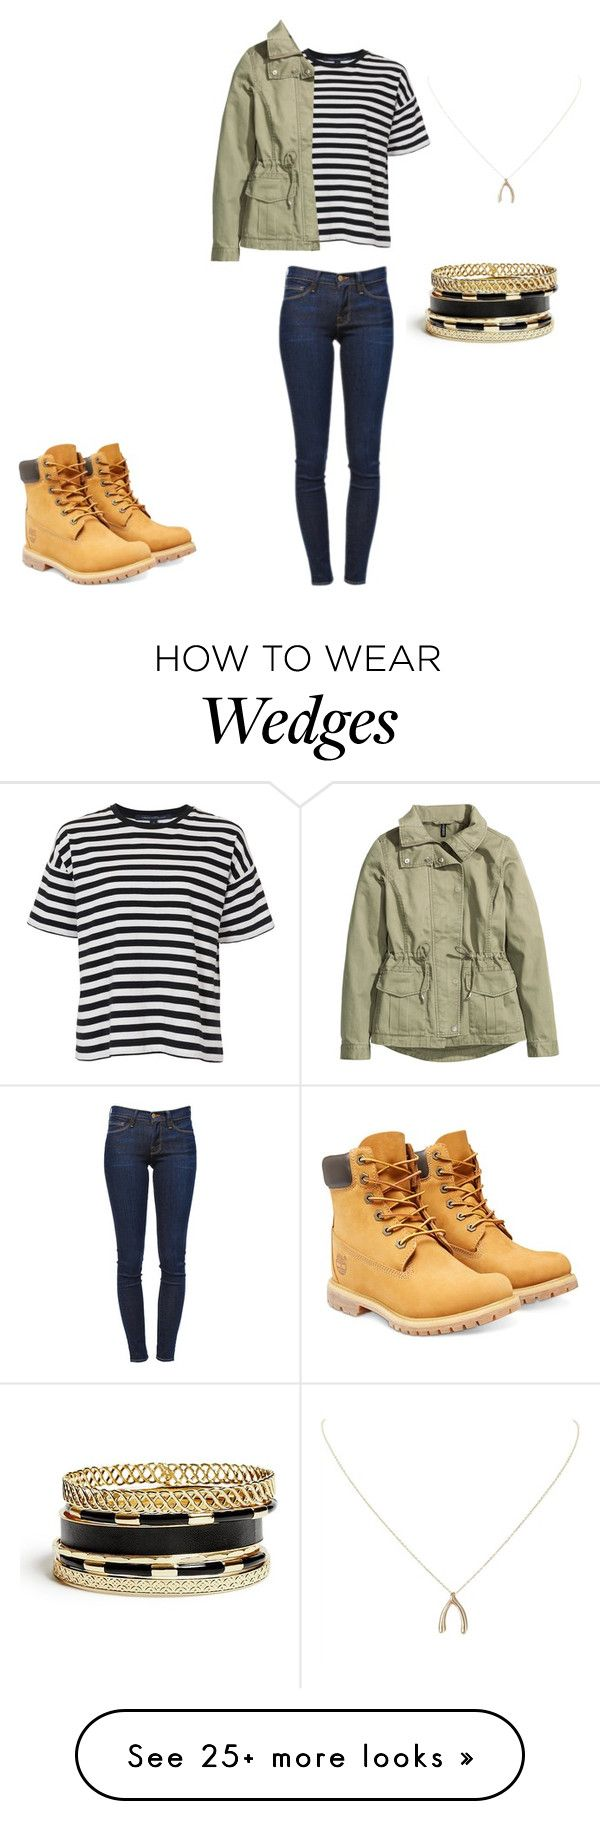 """""""Outfit"""" by abigailthelusmond on Polyvore featuring Timberland, French Connection, H&M, Frame Denim, GUESS and Humble Chic"""